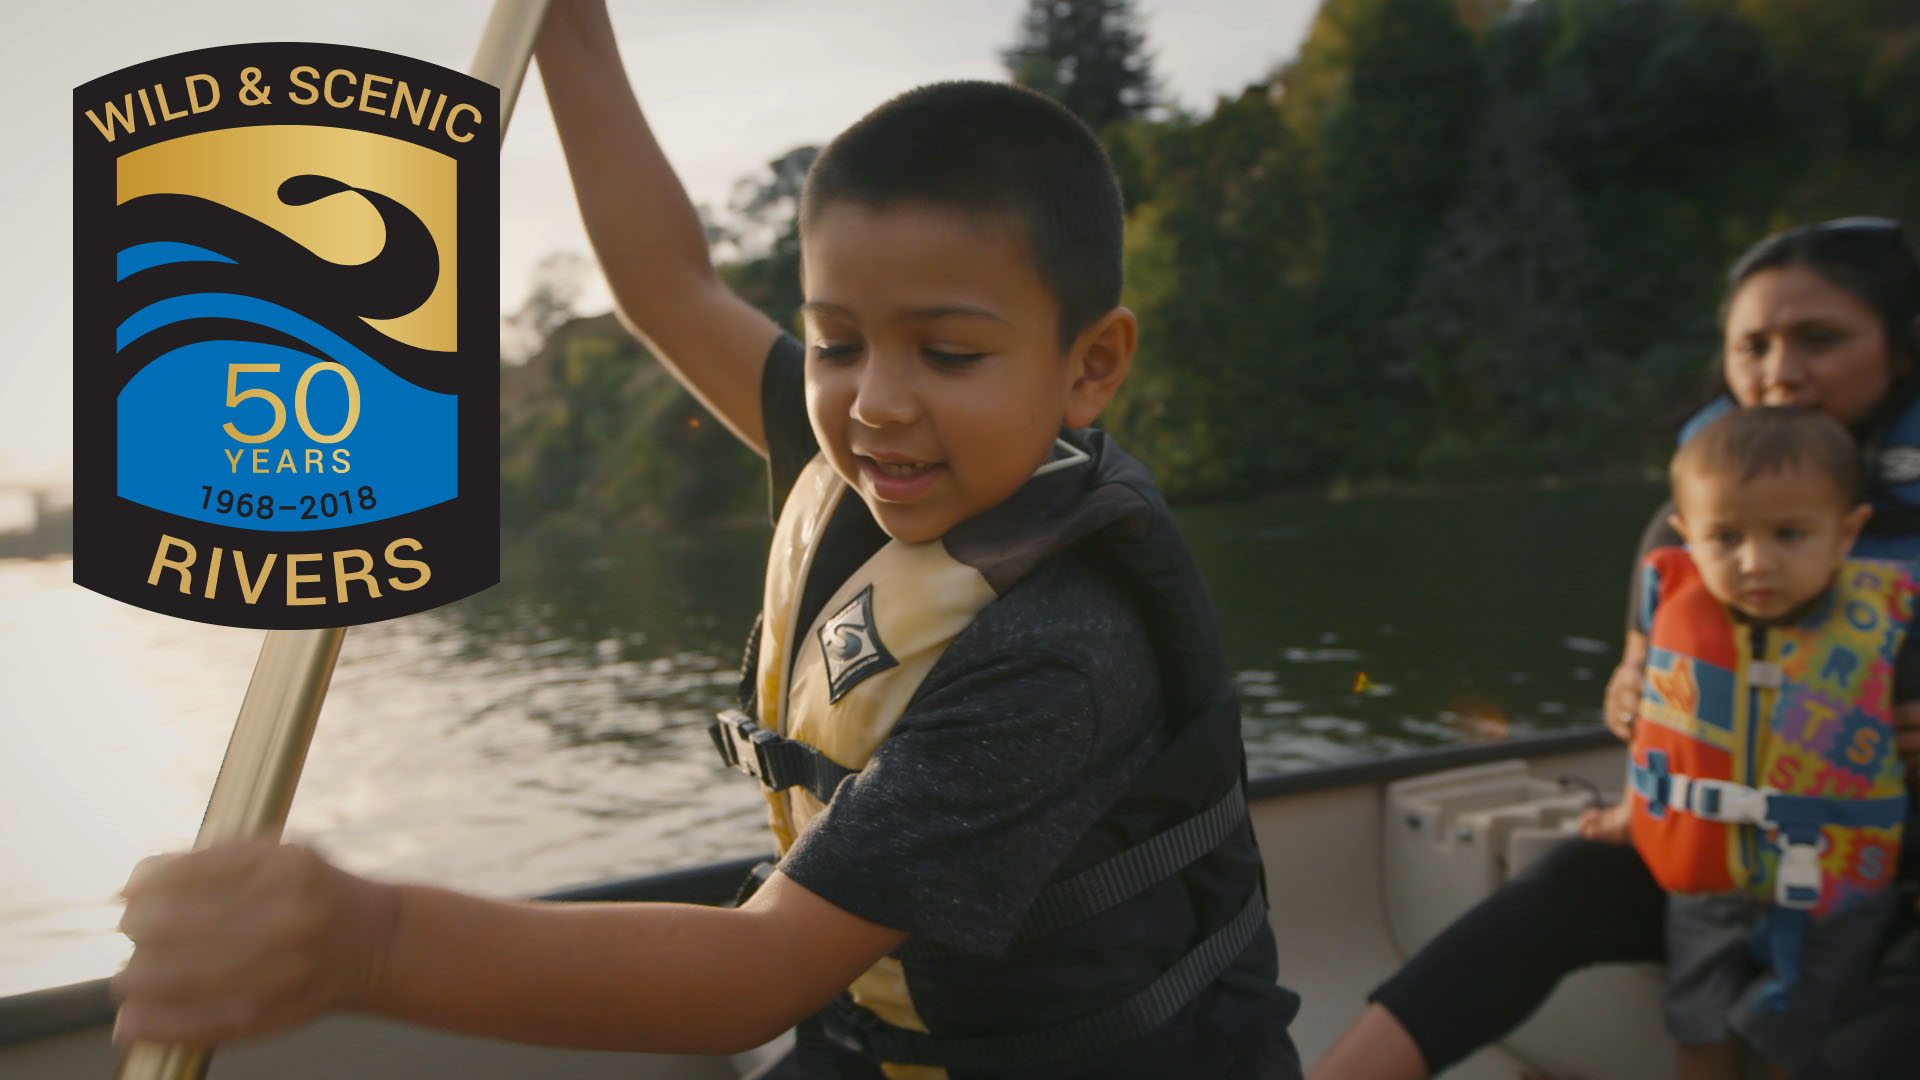 Image link to Wild and Scenic Rivers 50th Anniversary video